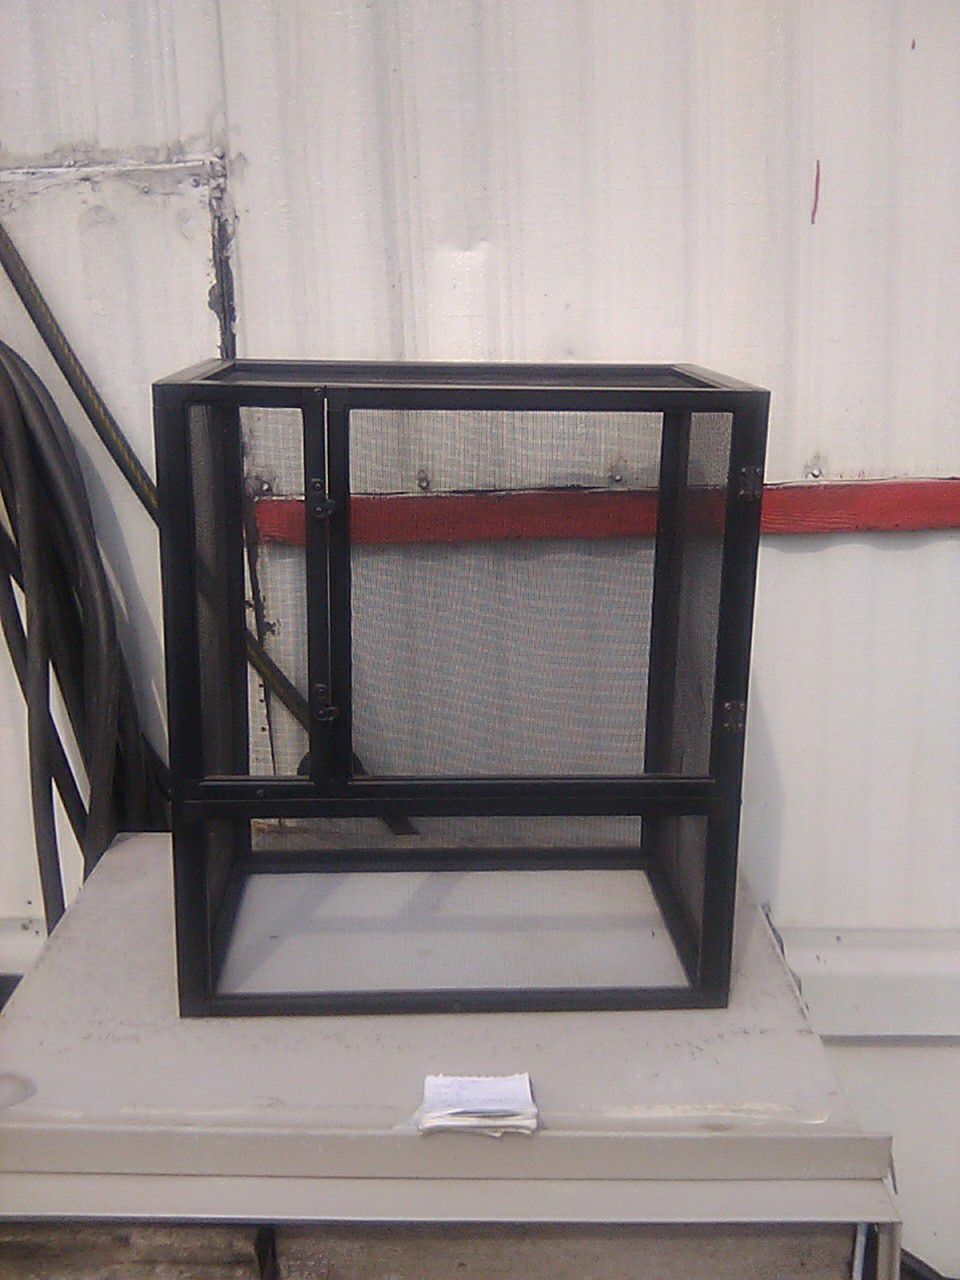 Small bird cage or hamster or Mouse 18 in wide 20 in tall 11 and 1/8 deep